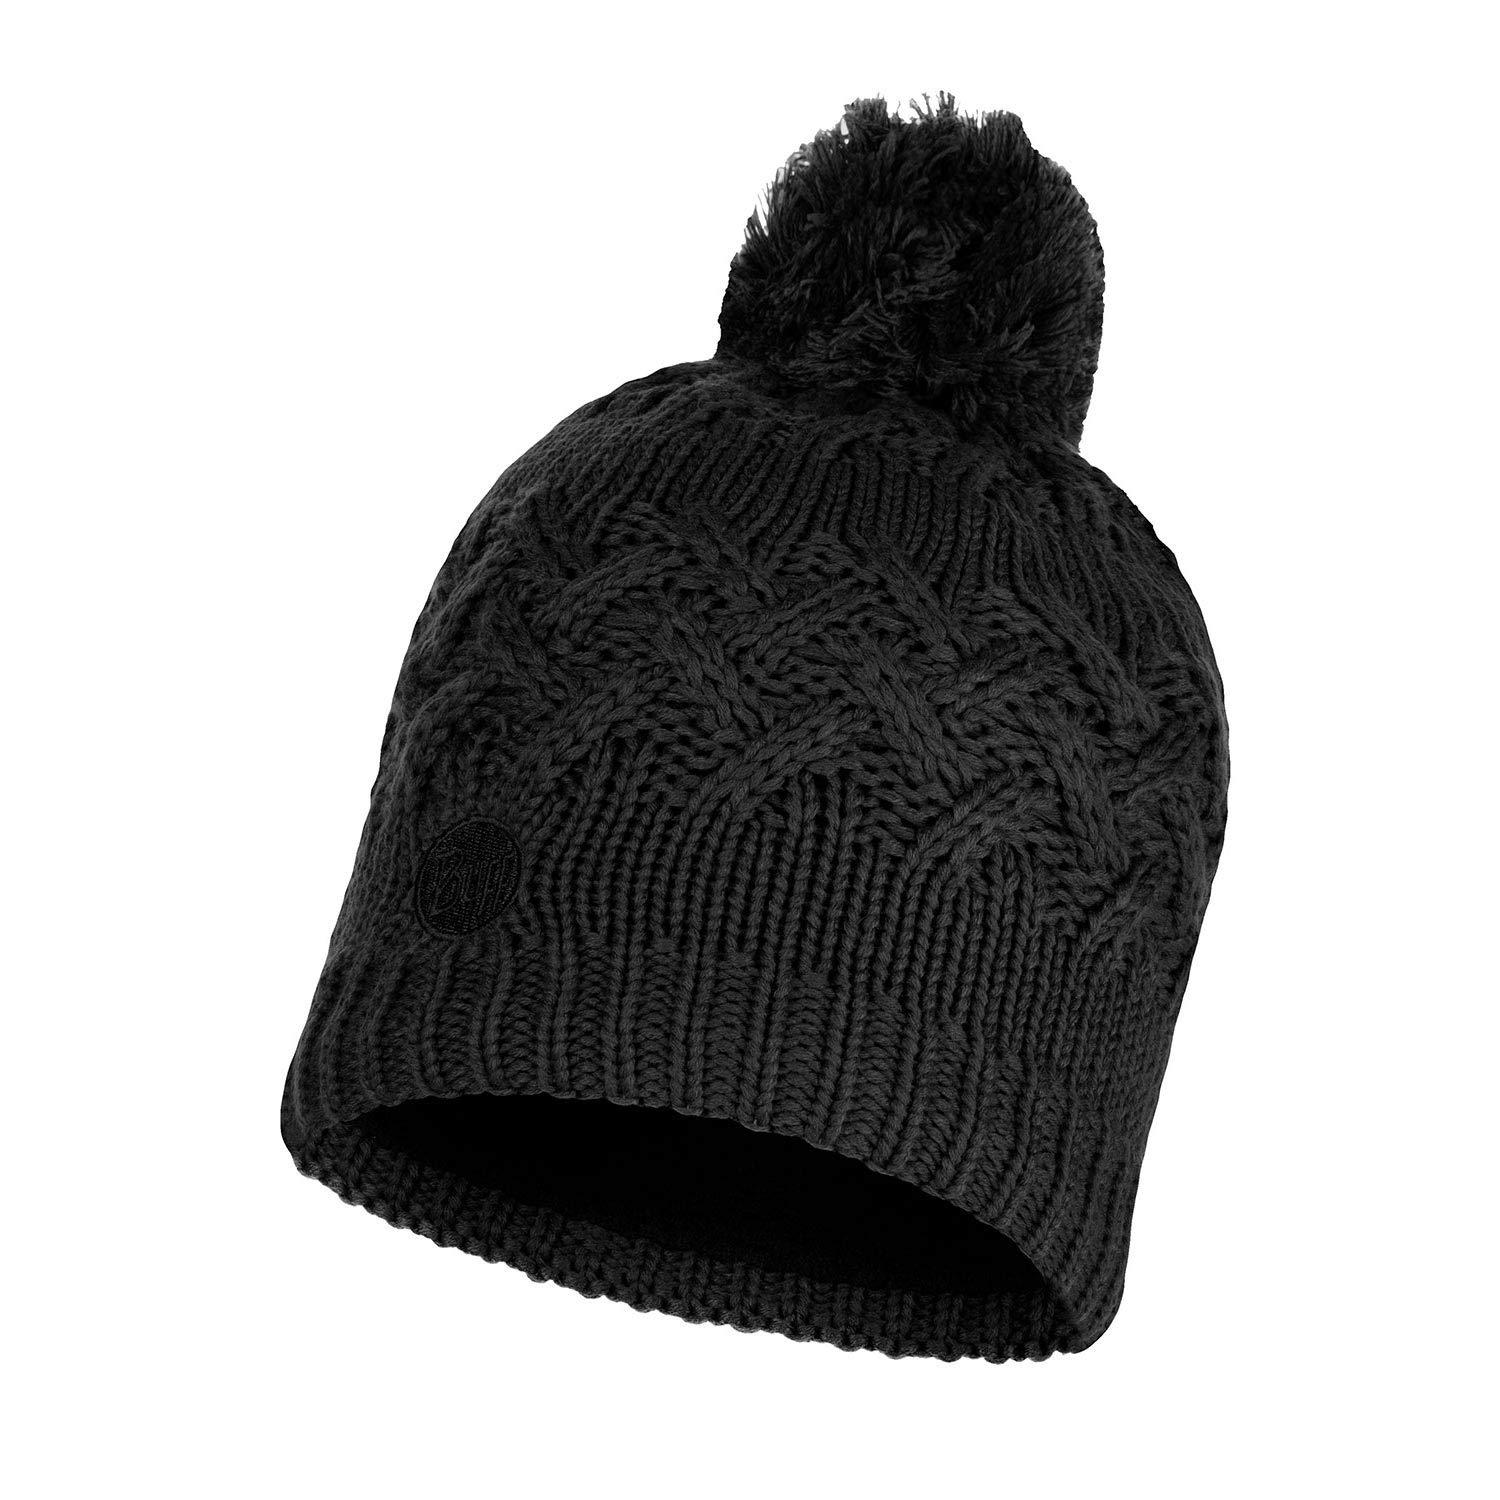 72294a92030 Amazon.com  Buff Savva Knitted and Polar Hat - AW16  Clothing